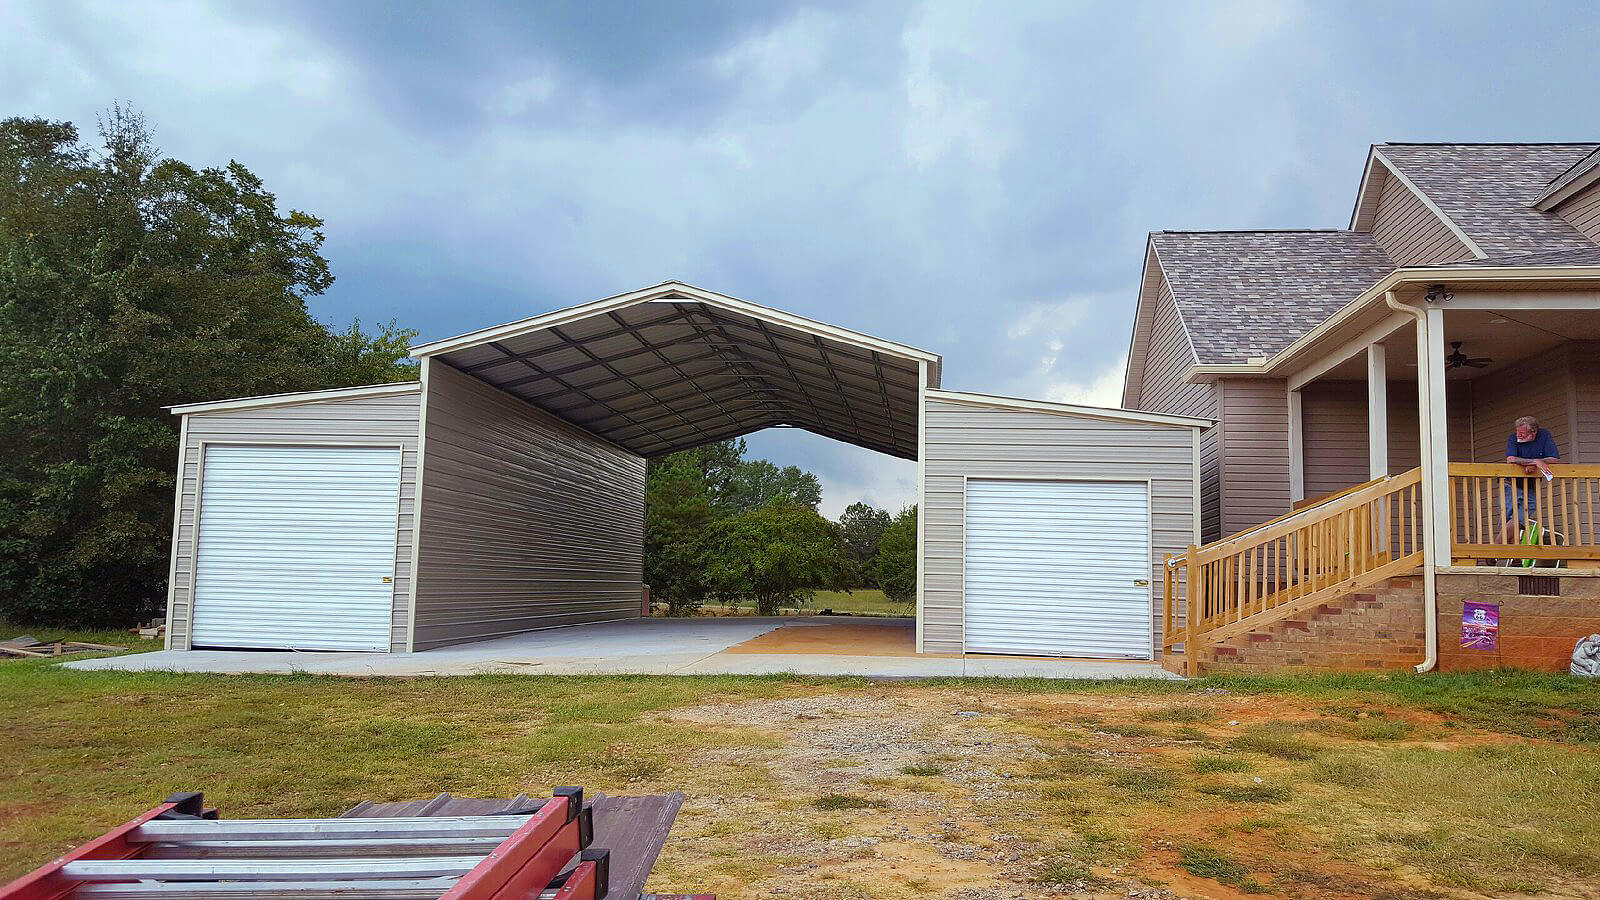 Things to Consider When Buying a Metal Barn